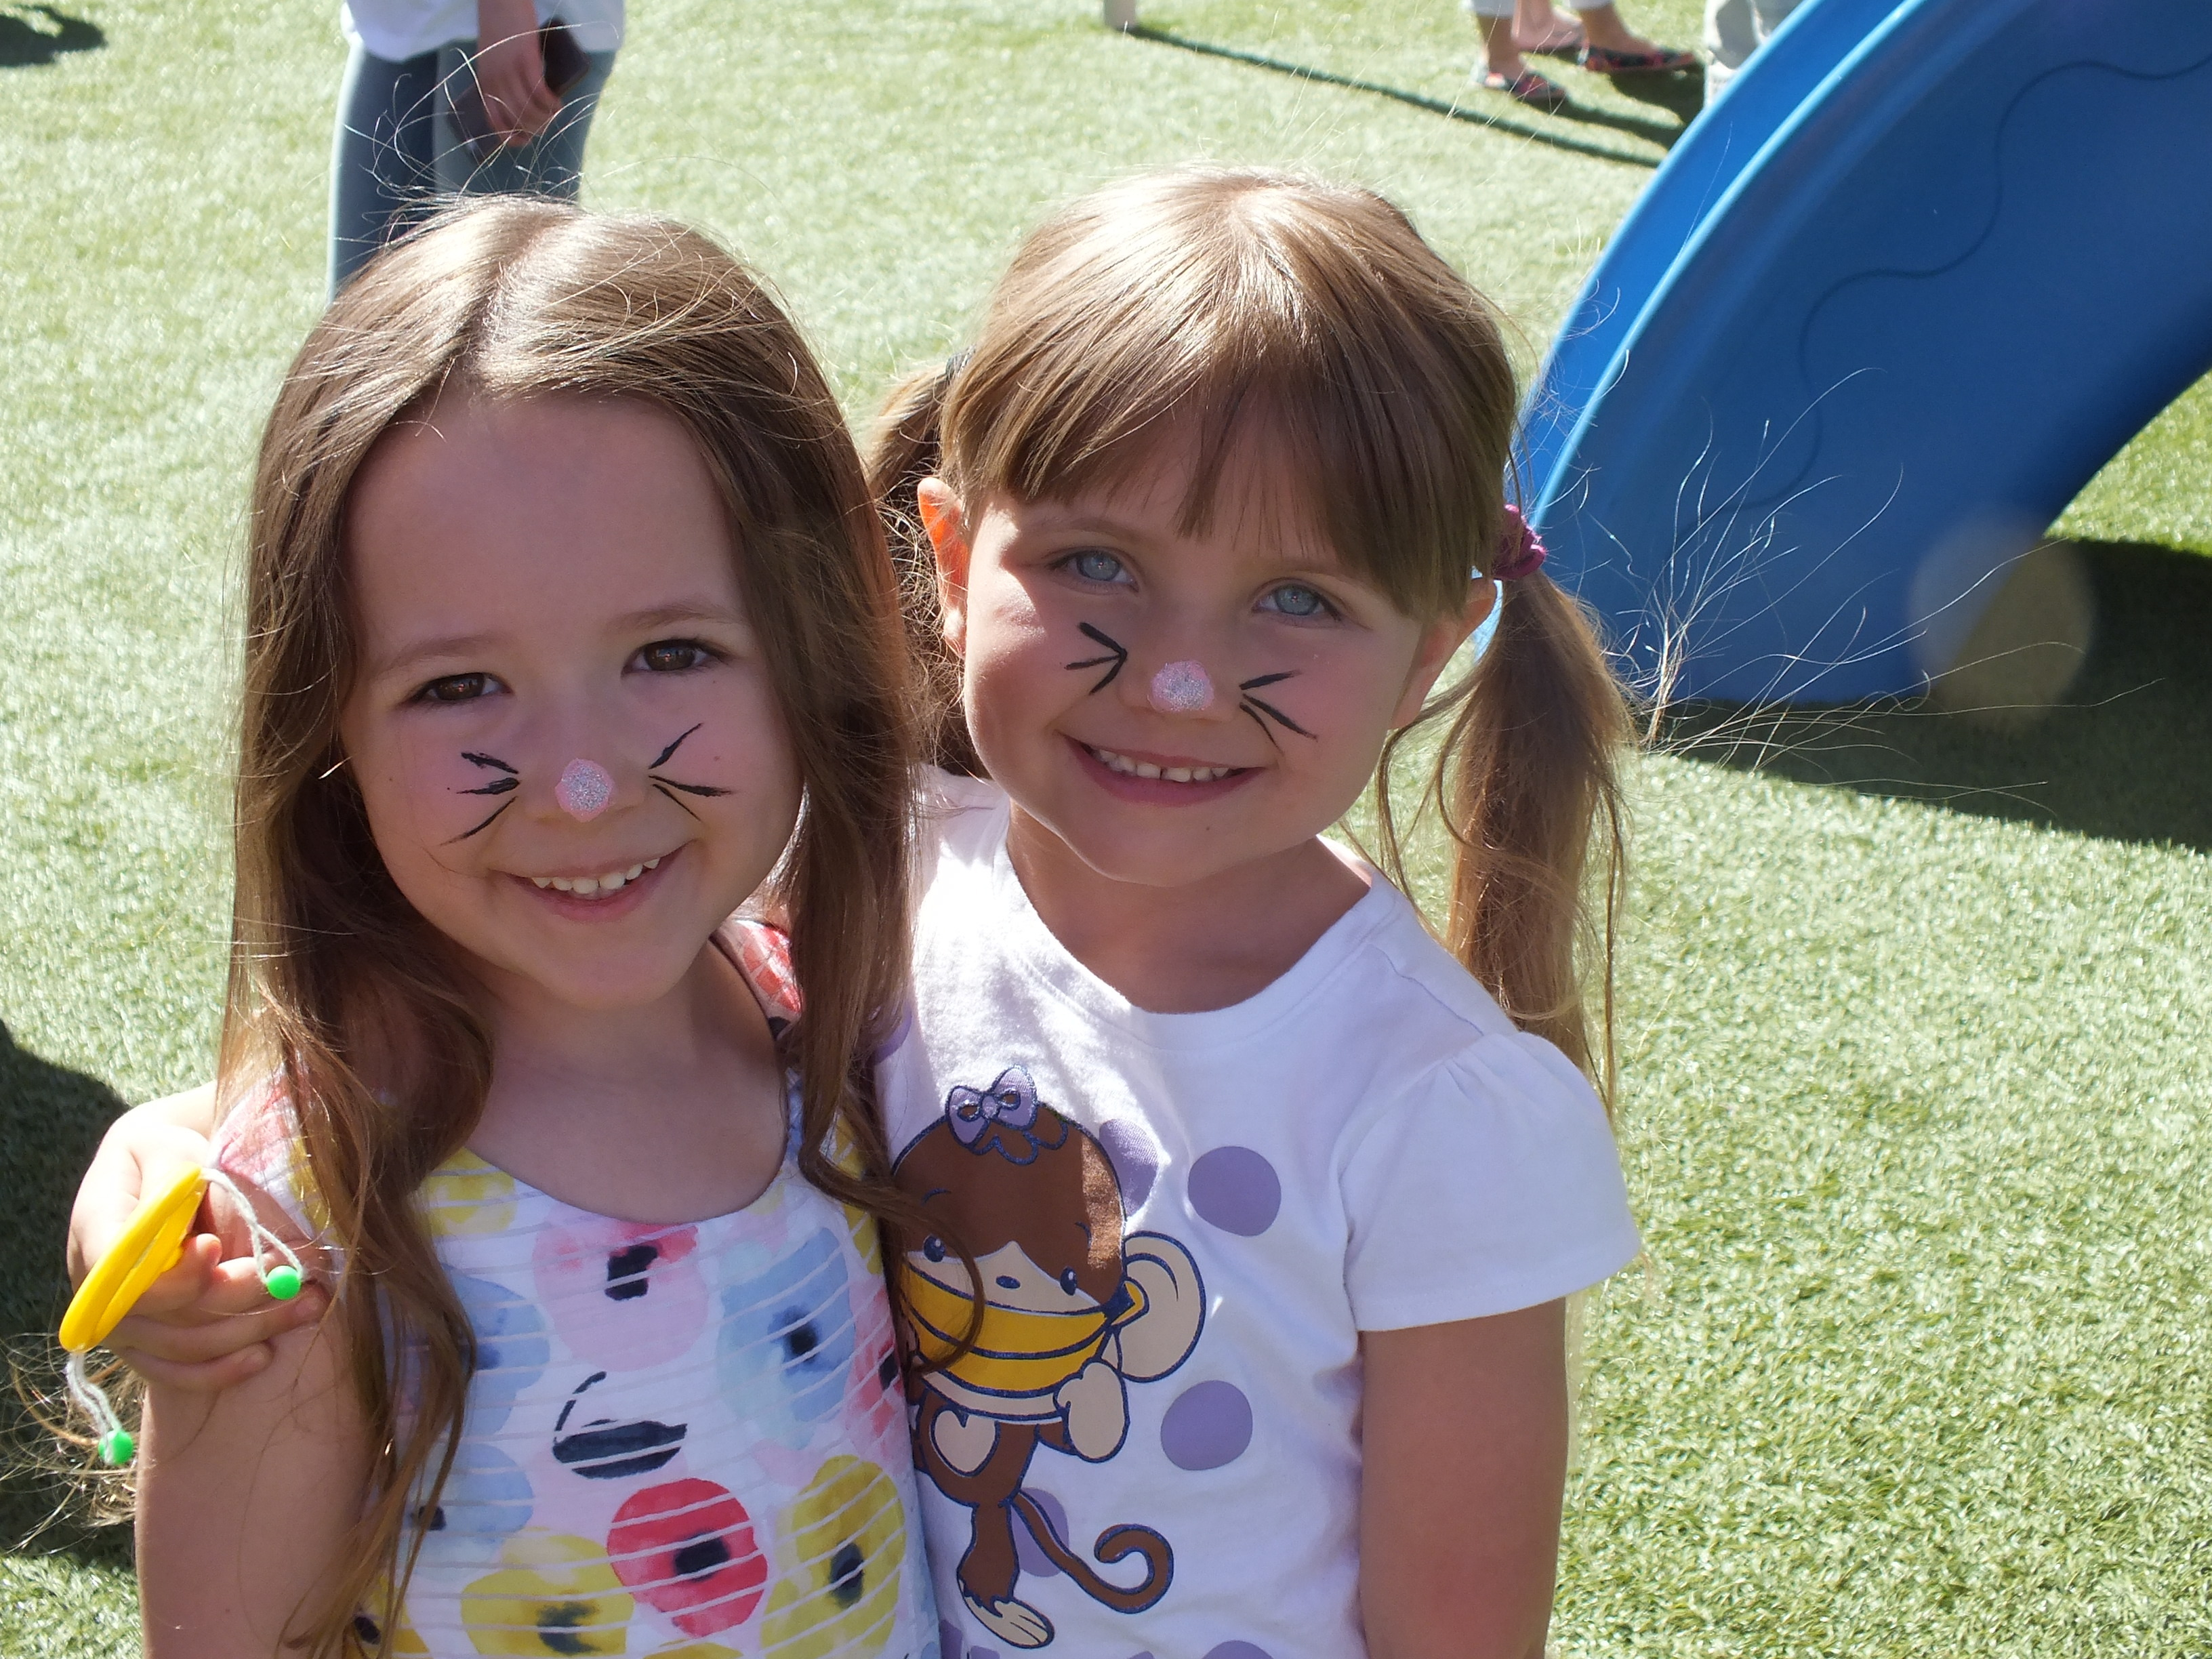 Two little girls with whiskers painted on their faces celebrating spring fling